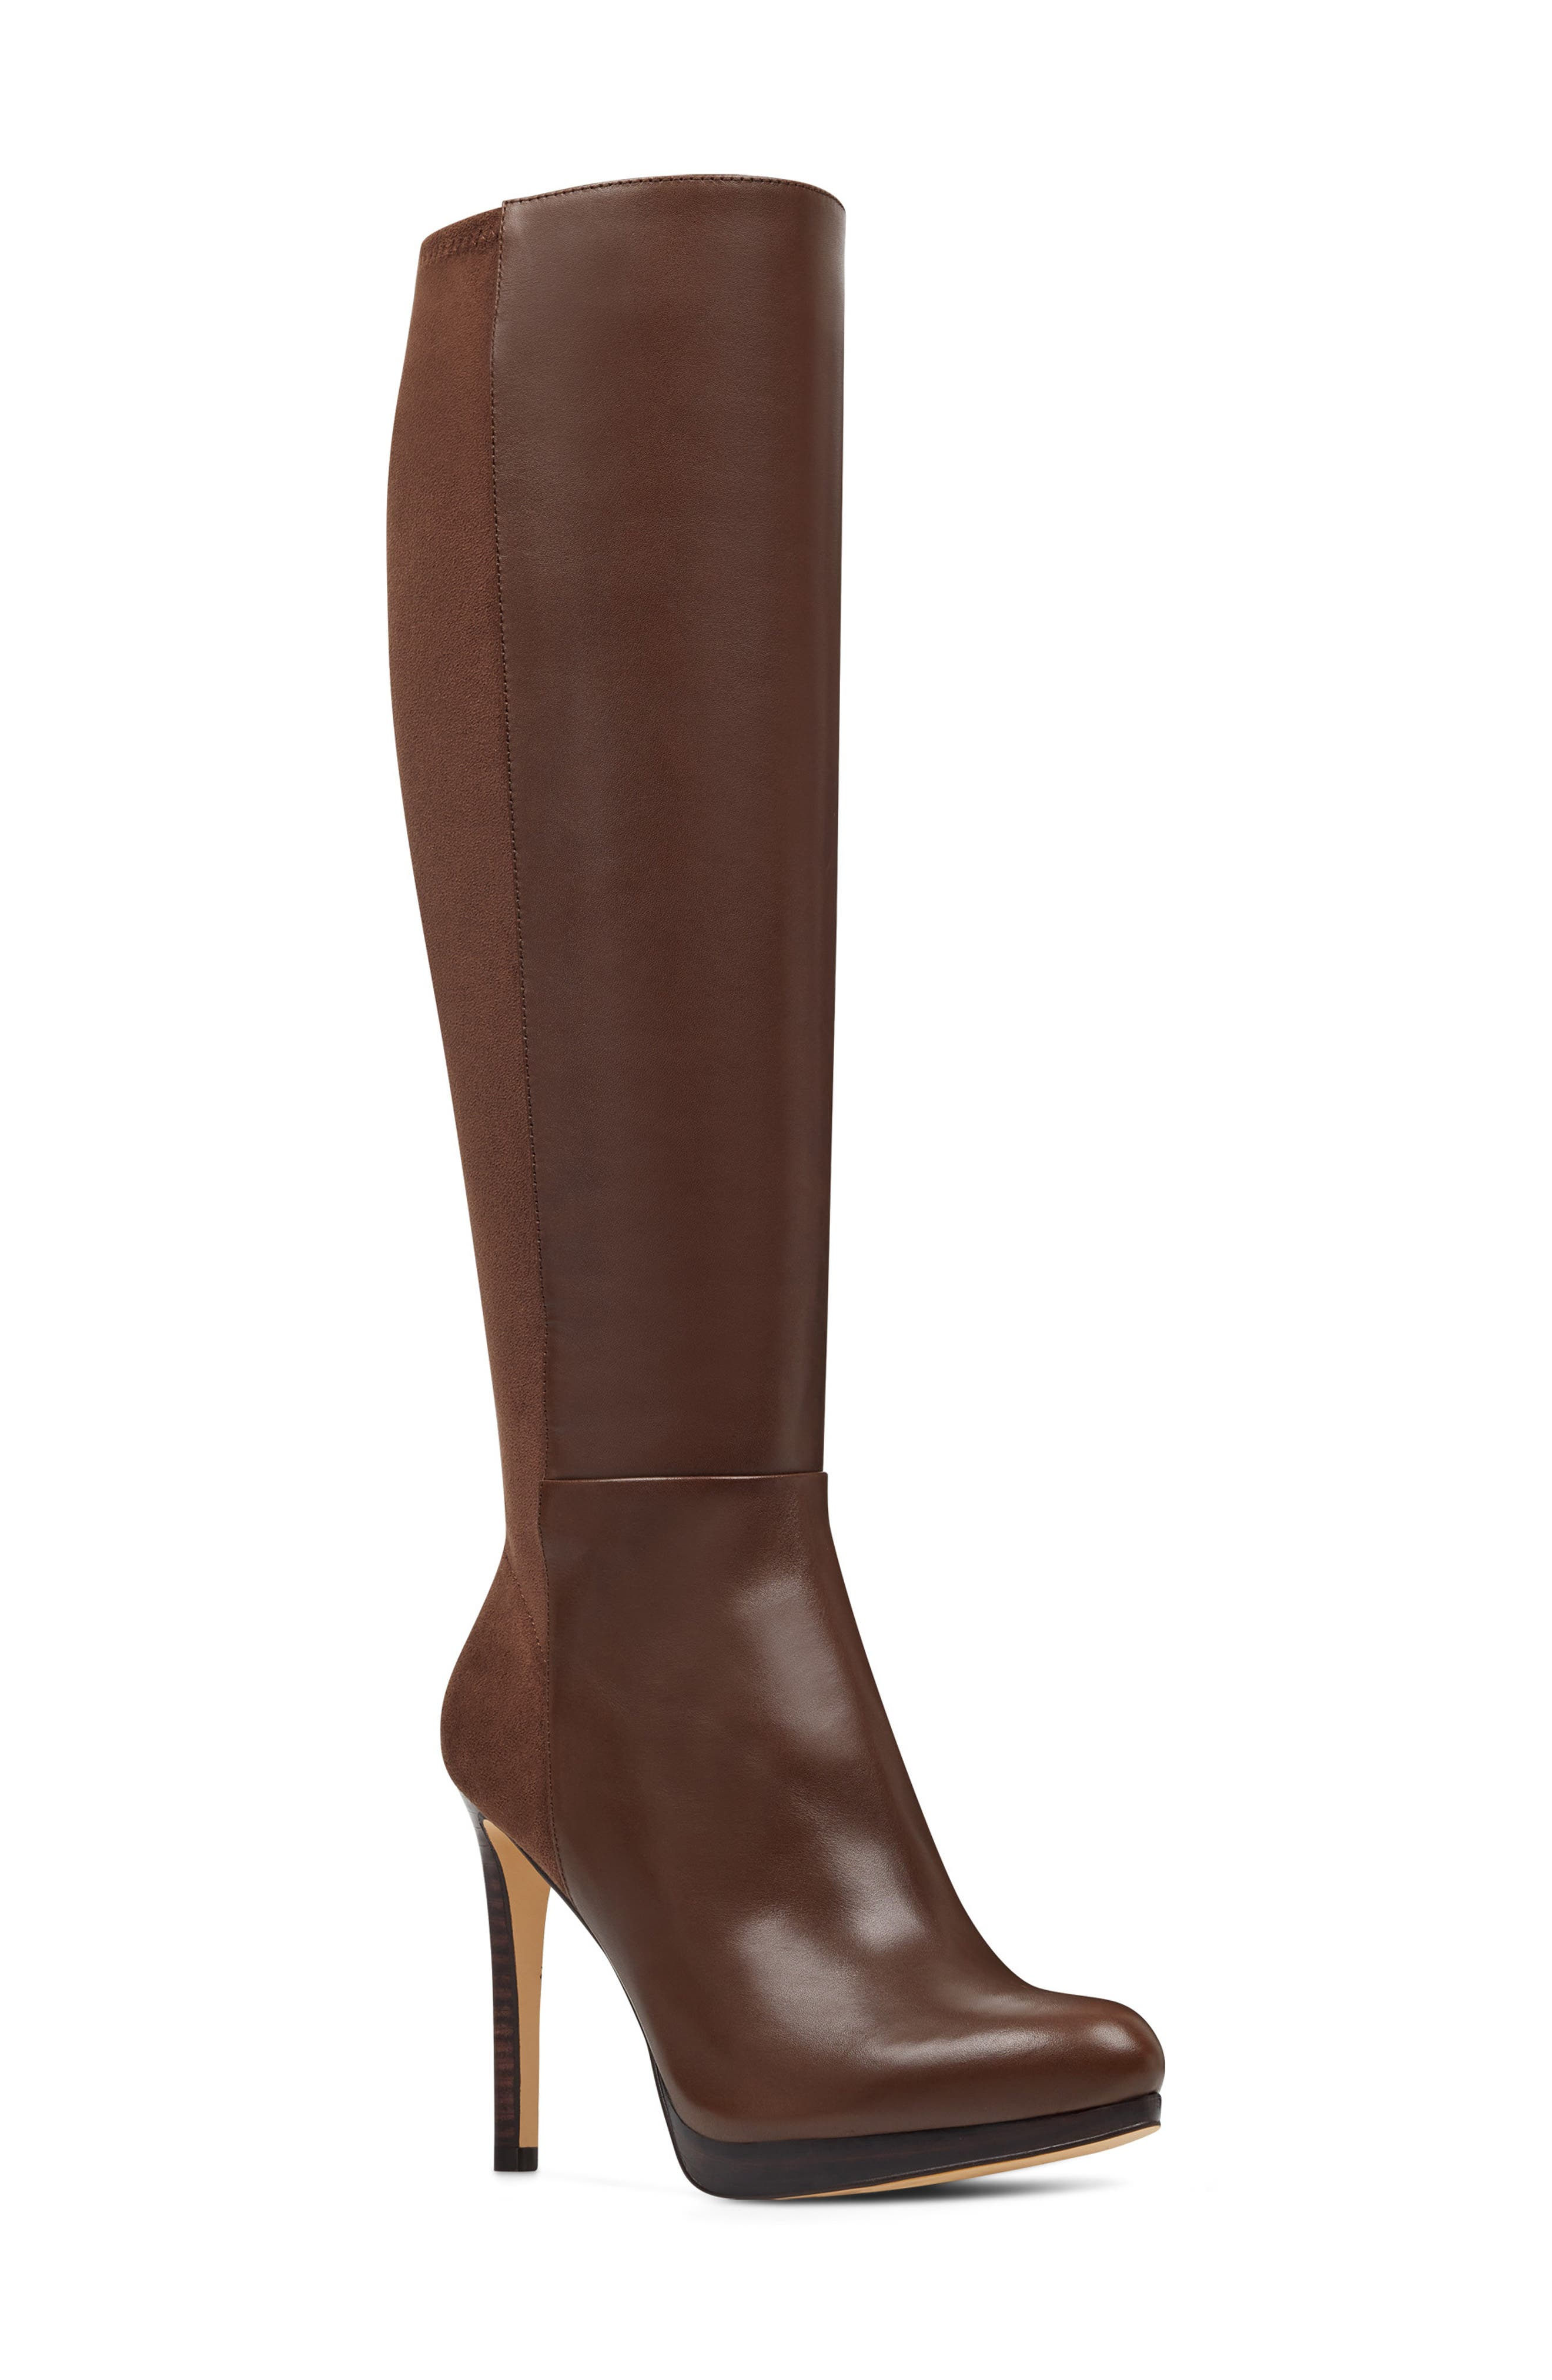 Nine West Quizme Knee High Boot, Regular Calf- Brown